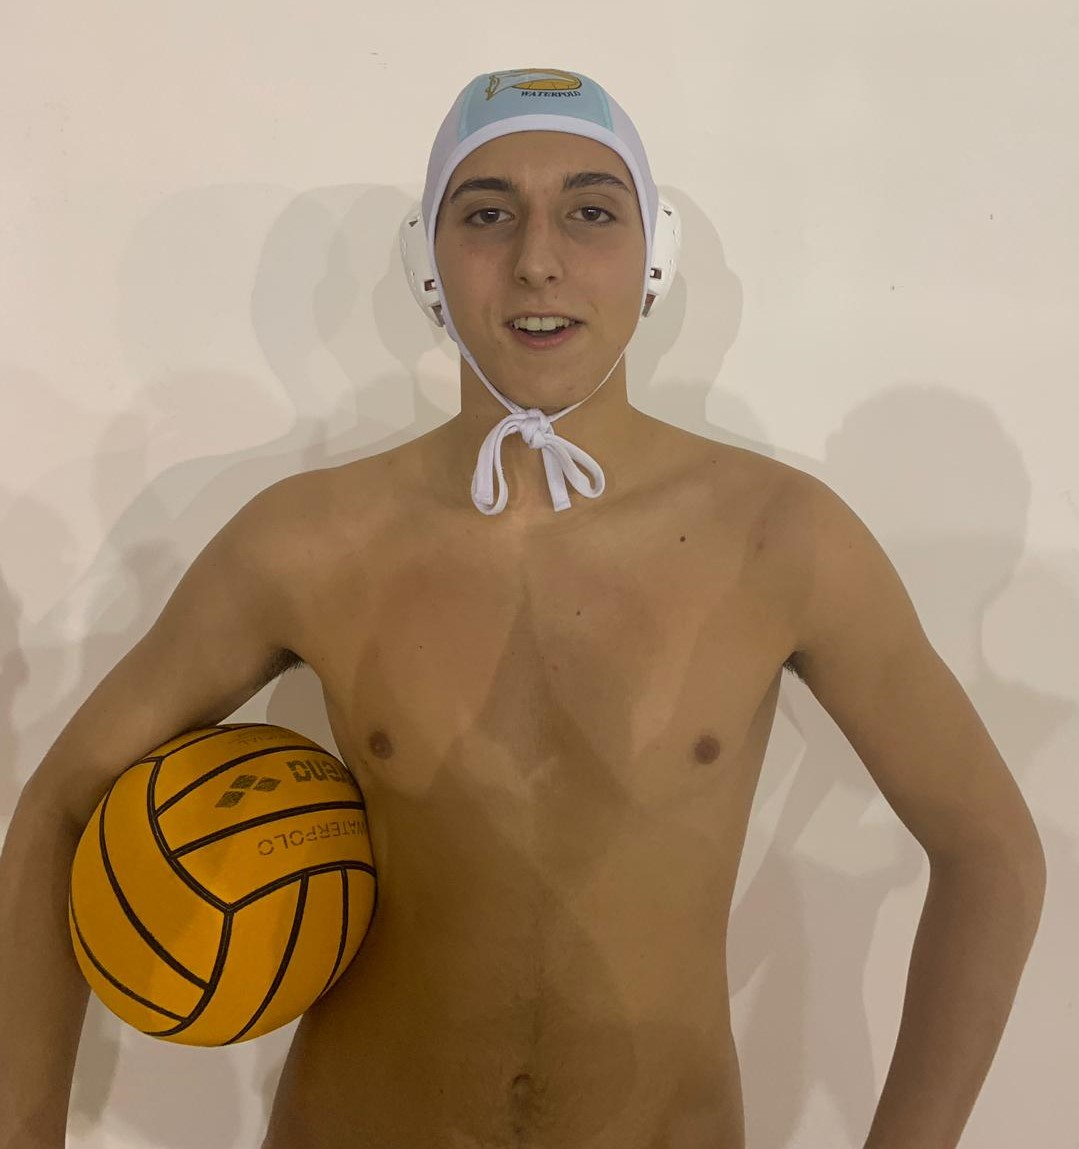 https://www.cclaziowaterpolo.it/wp-content/uploads/2019/12/lapreziosa-calotta.jpeg